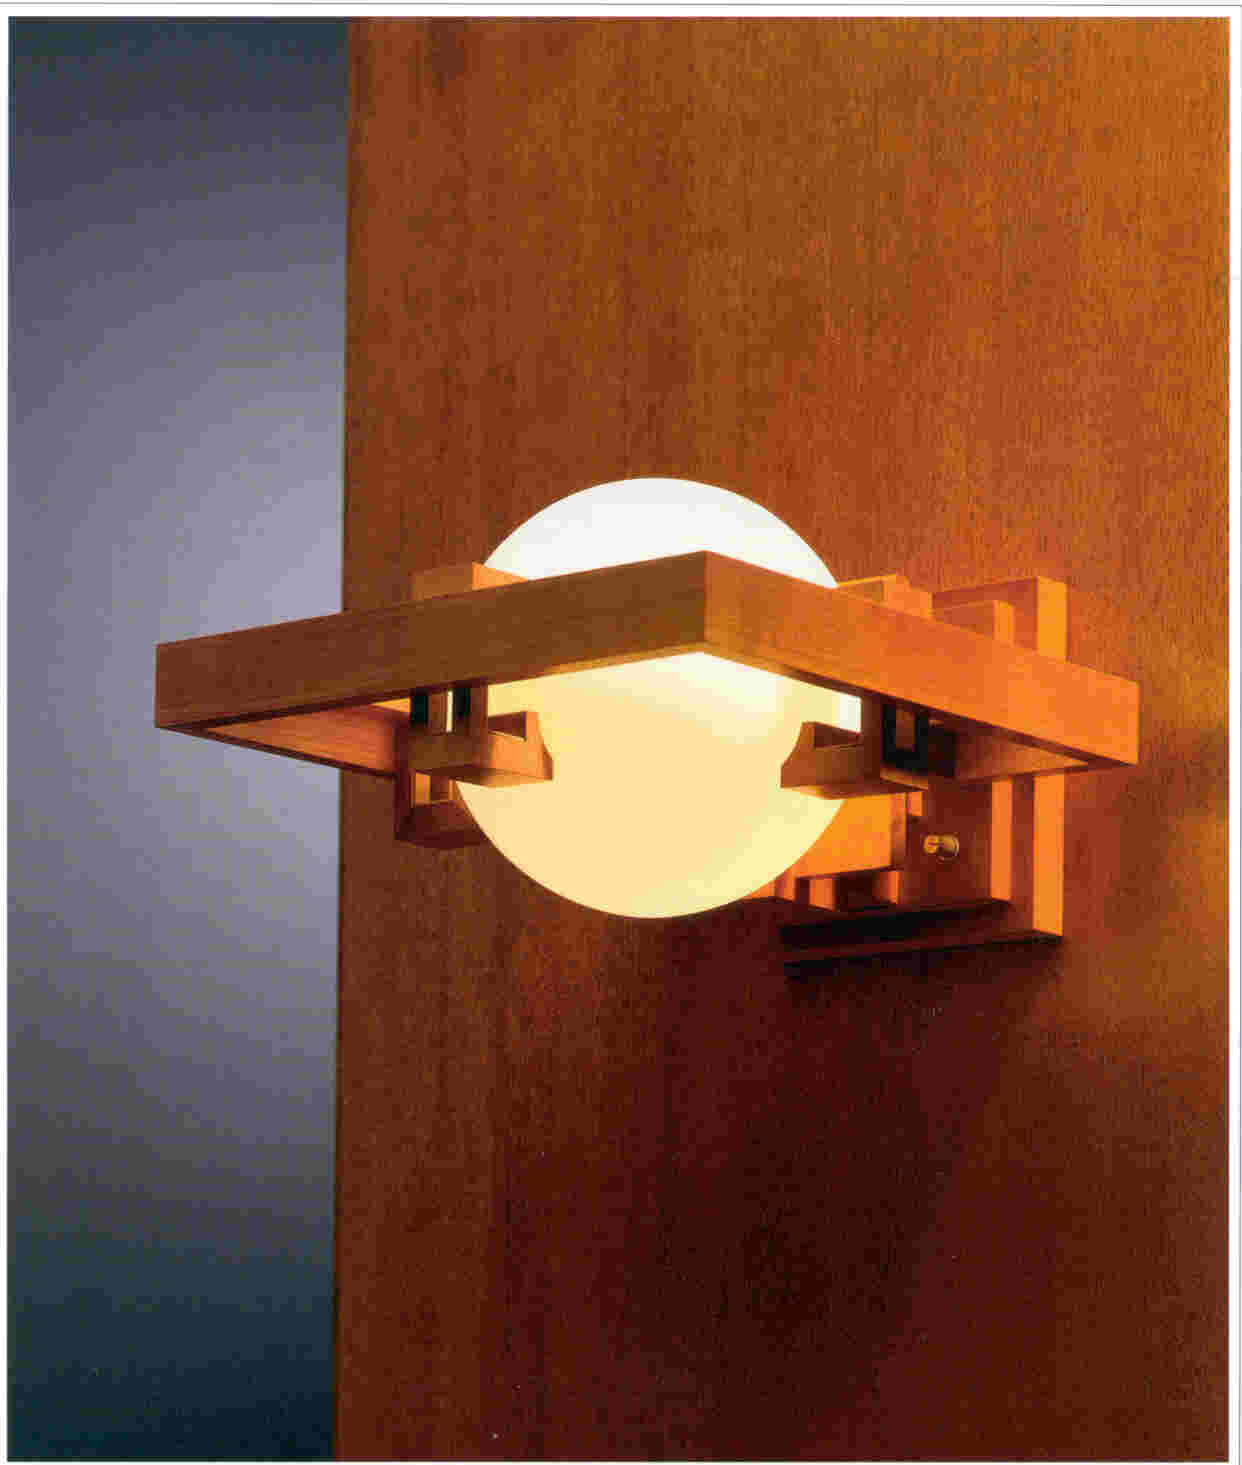 10 reasons why you should buy the frank lloyd wright lamps if you want fine designs and carving then handmade lamps especially the frank lloyd wright lamps are the best option for you arubaitofo Image collections